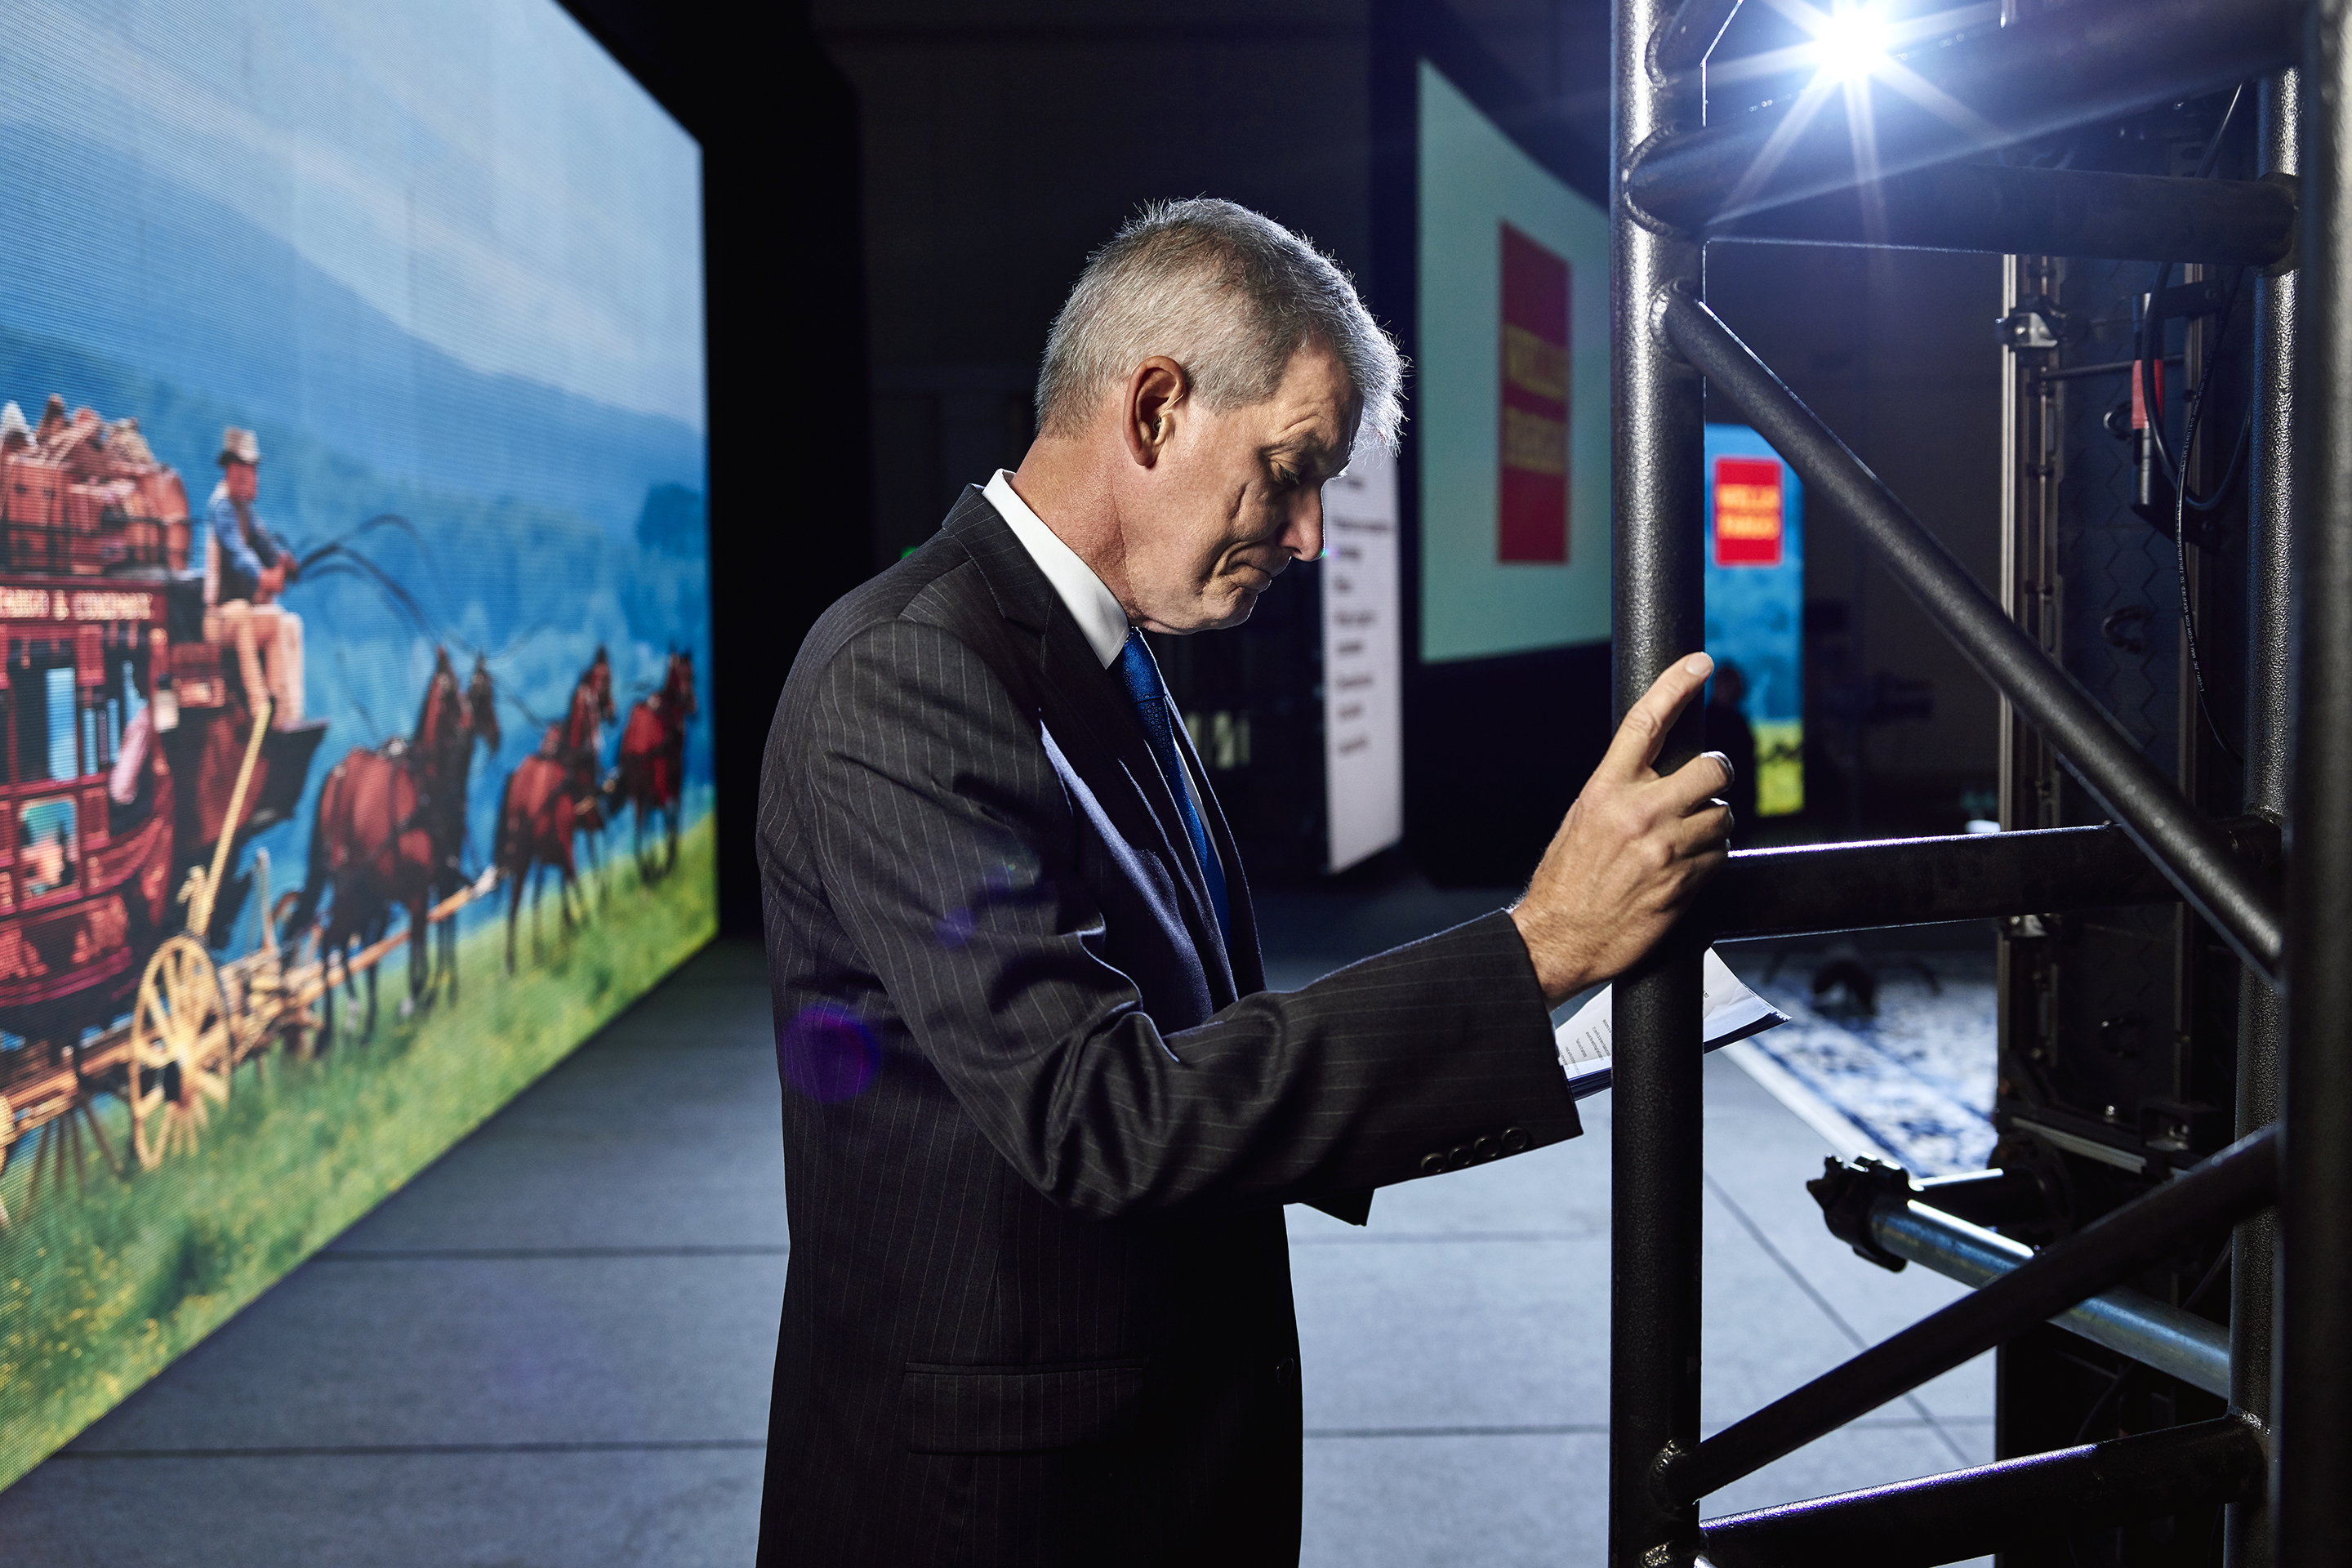 Wells Fargo CEO Tim Sloan rehearses for a company town hall in May at the Pasadena Convention Center.